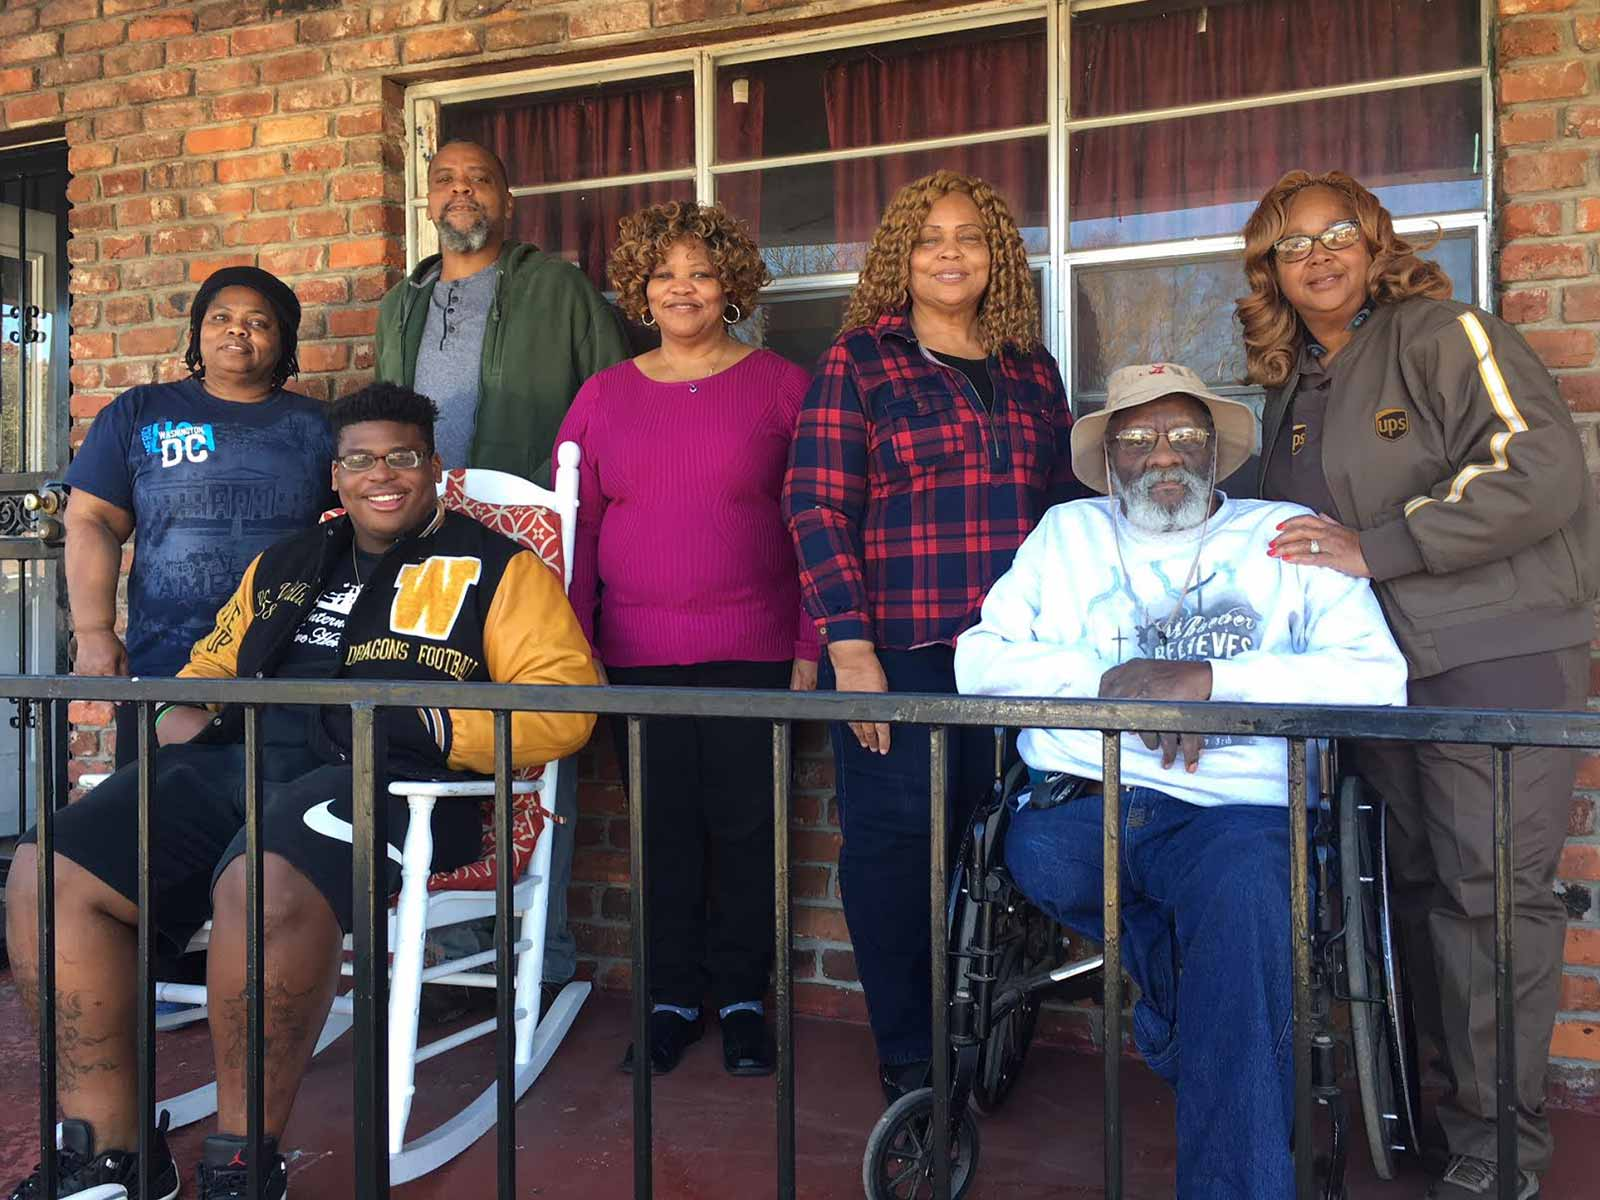 Part of Quinnen Williams's support team is pictured here in a photo taken Wednesday outside of his grandmother's home in Birmingham. From left to right: aunt LaQuita Comack, brother Giovanni Williams, uncle Charles Henderson II, aunt Ivy Allen, grandpa Charles Henderson, grandmother Yvarta Henderson and aunt Marilyn Jackson.